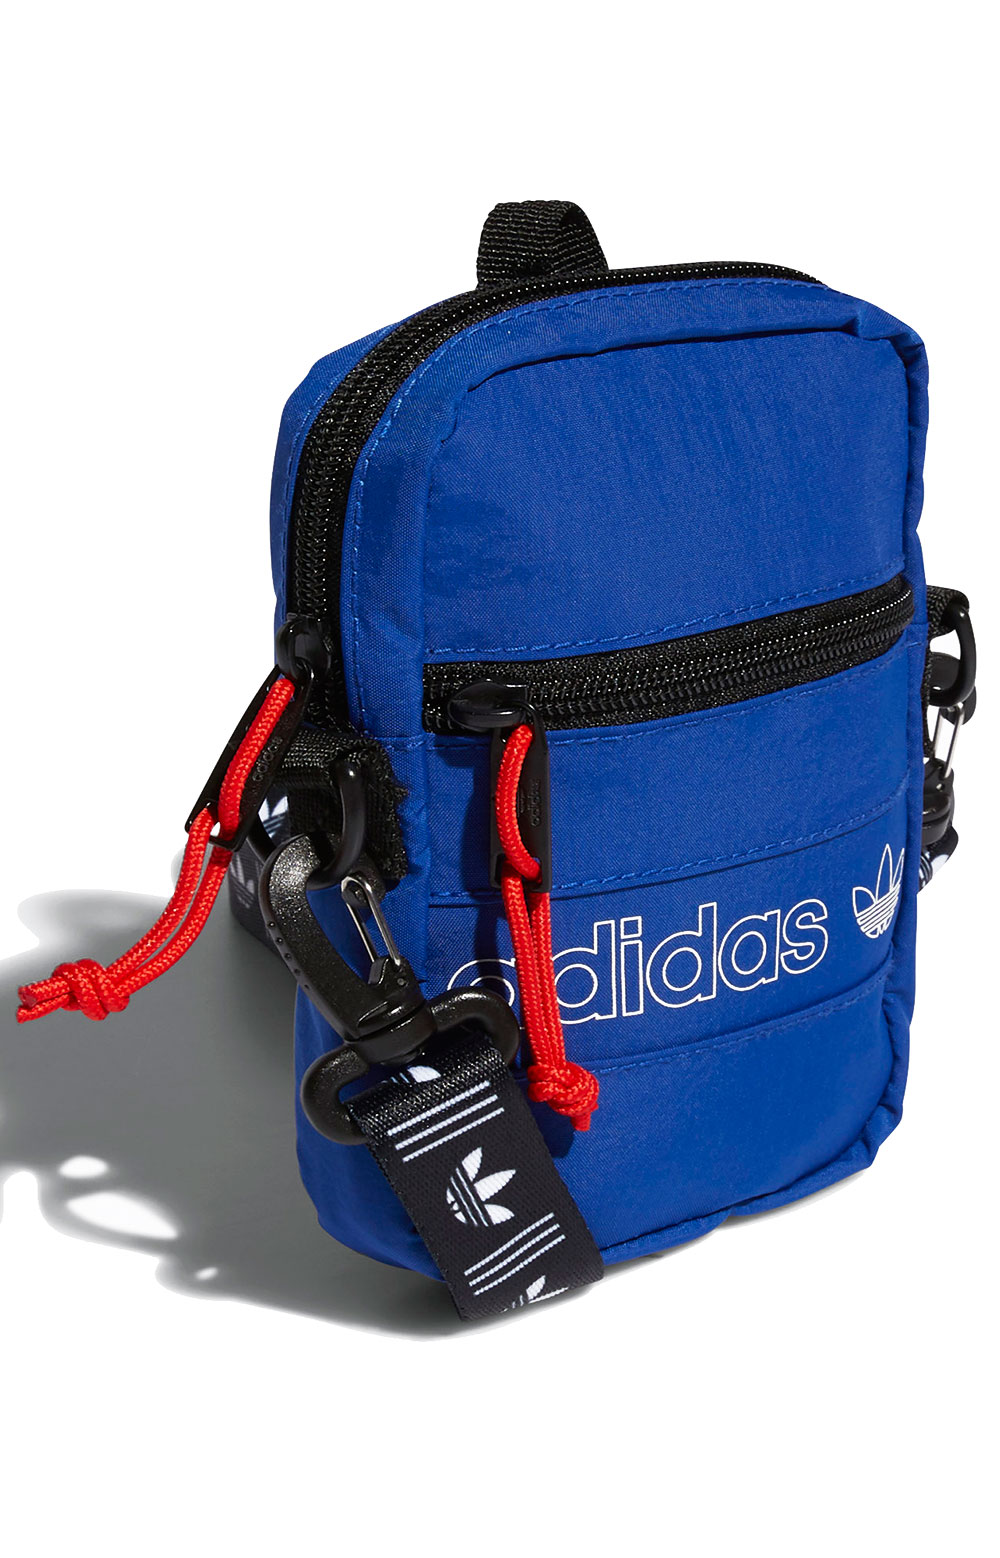 Originals Festival Crossbody Bag - Team Royal Blue 3